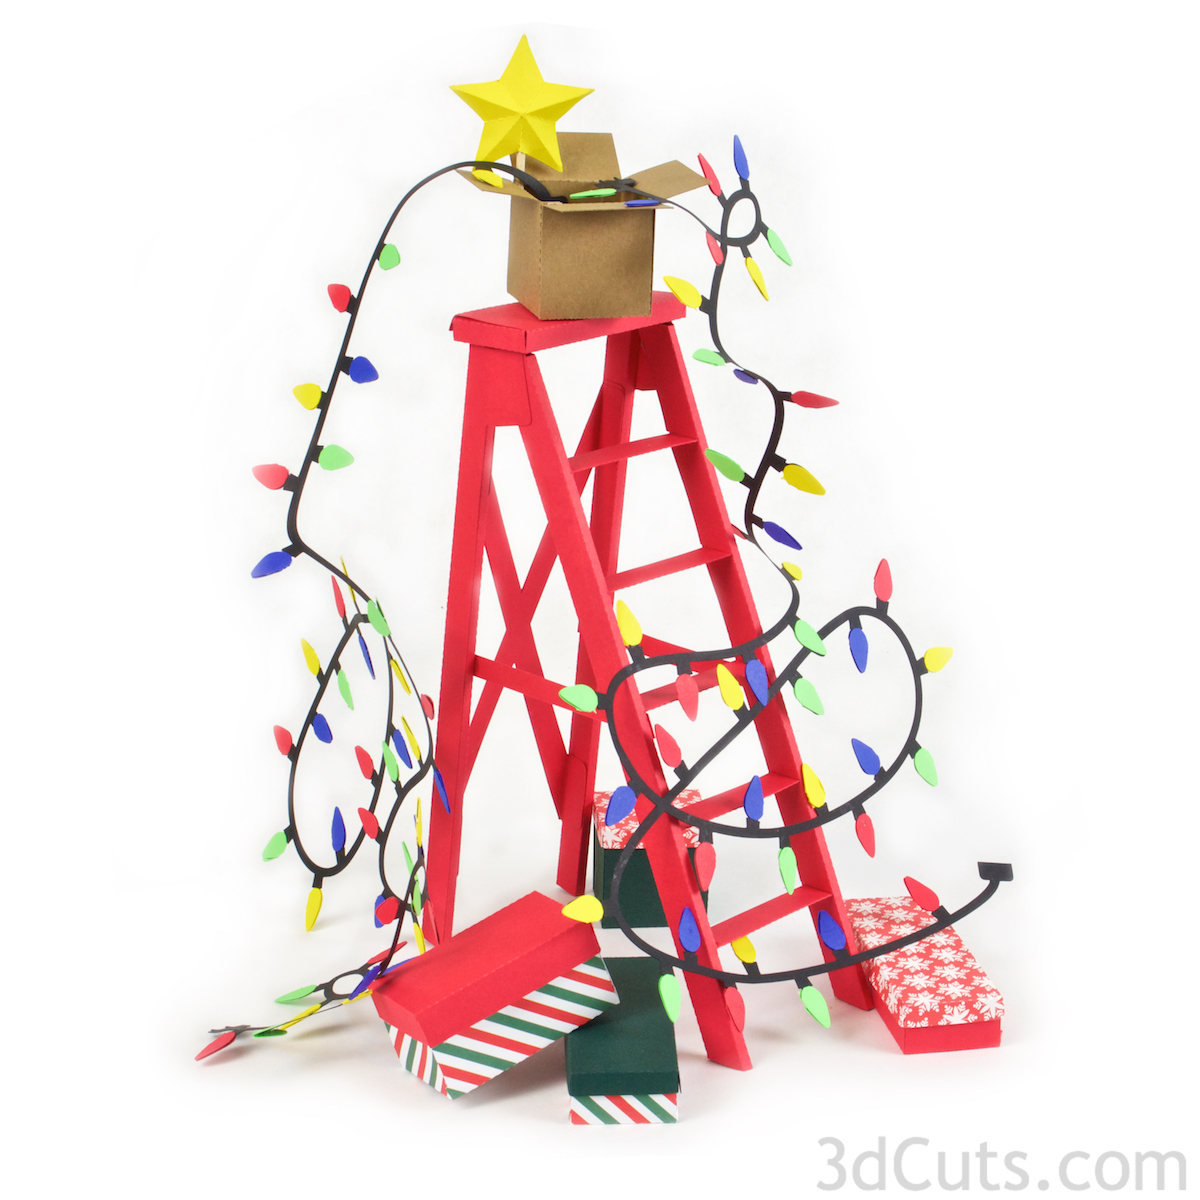 3d Christmas Ladder centerpiece constructed from card stock. SVG,PDF,PNG, DXF cutting files available from 3dcuts.com. Designed by Marji Roy